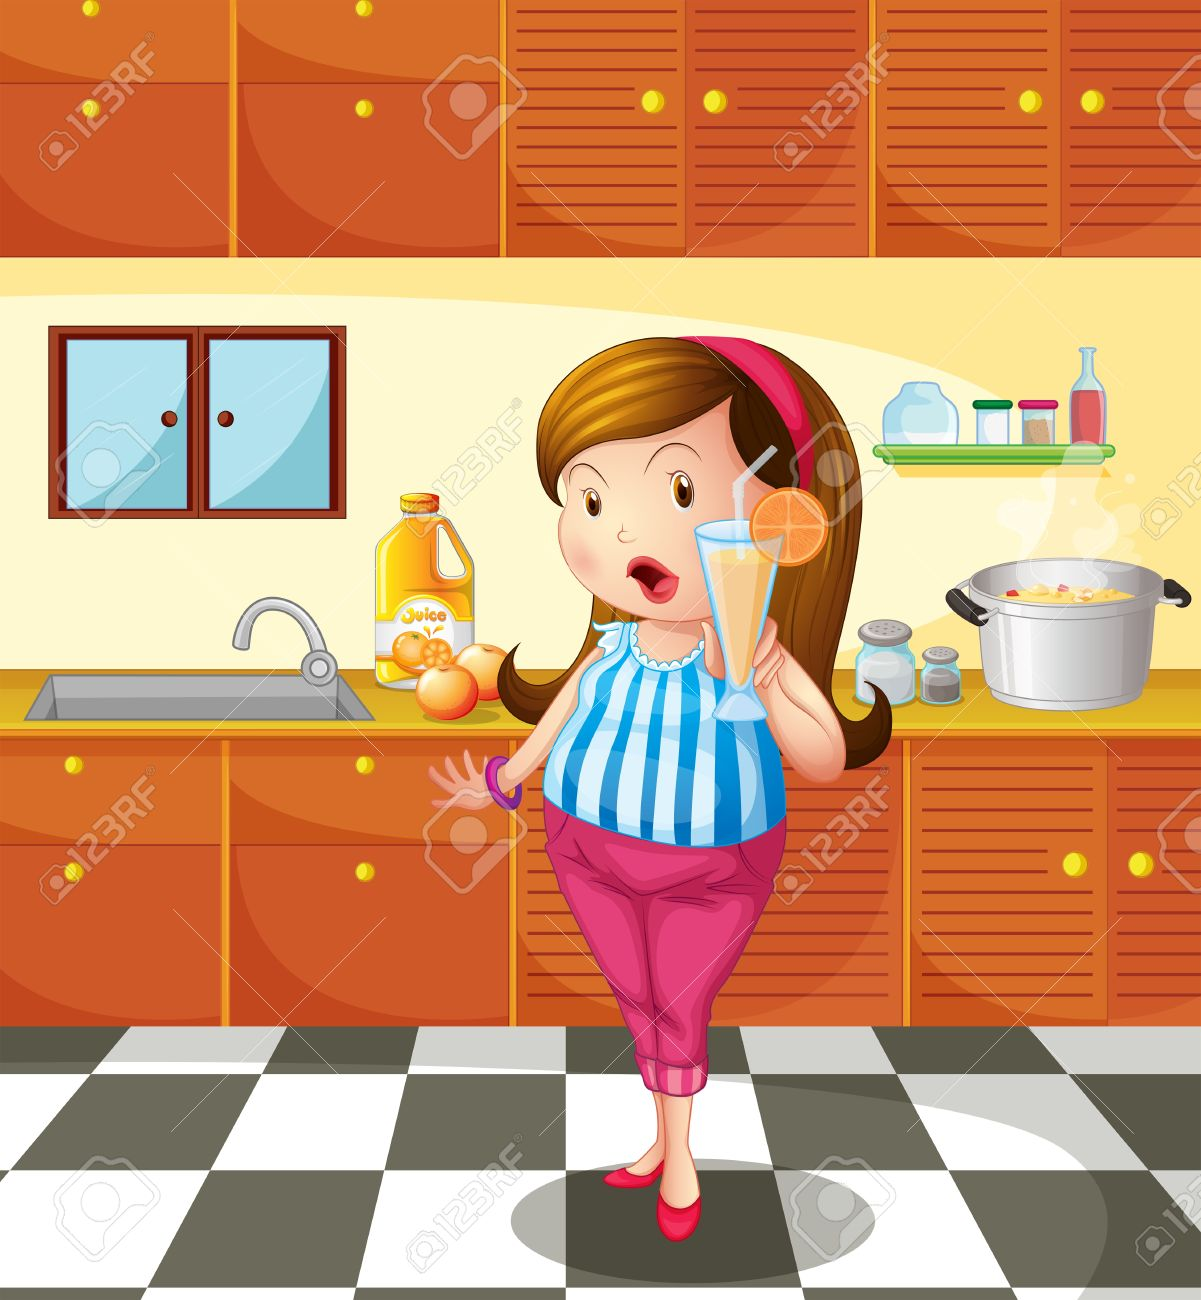 Illustration of a lady holding an orange juice inside the kitchen Stock Vector - 18610766